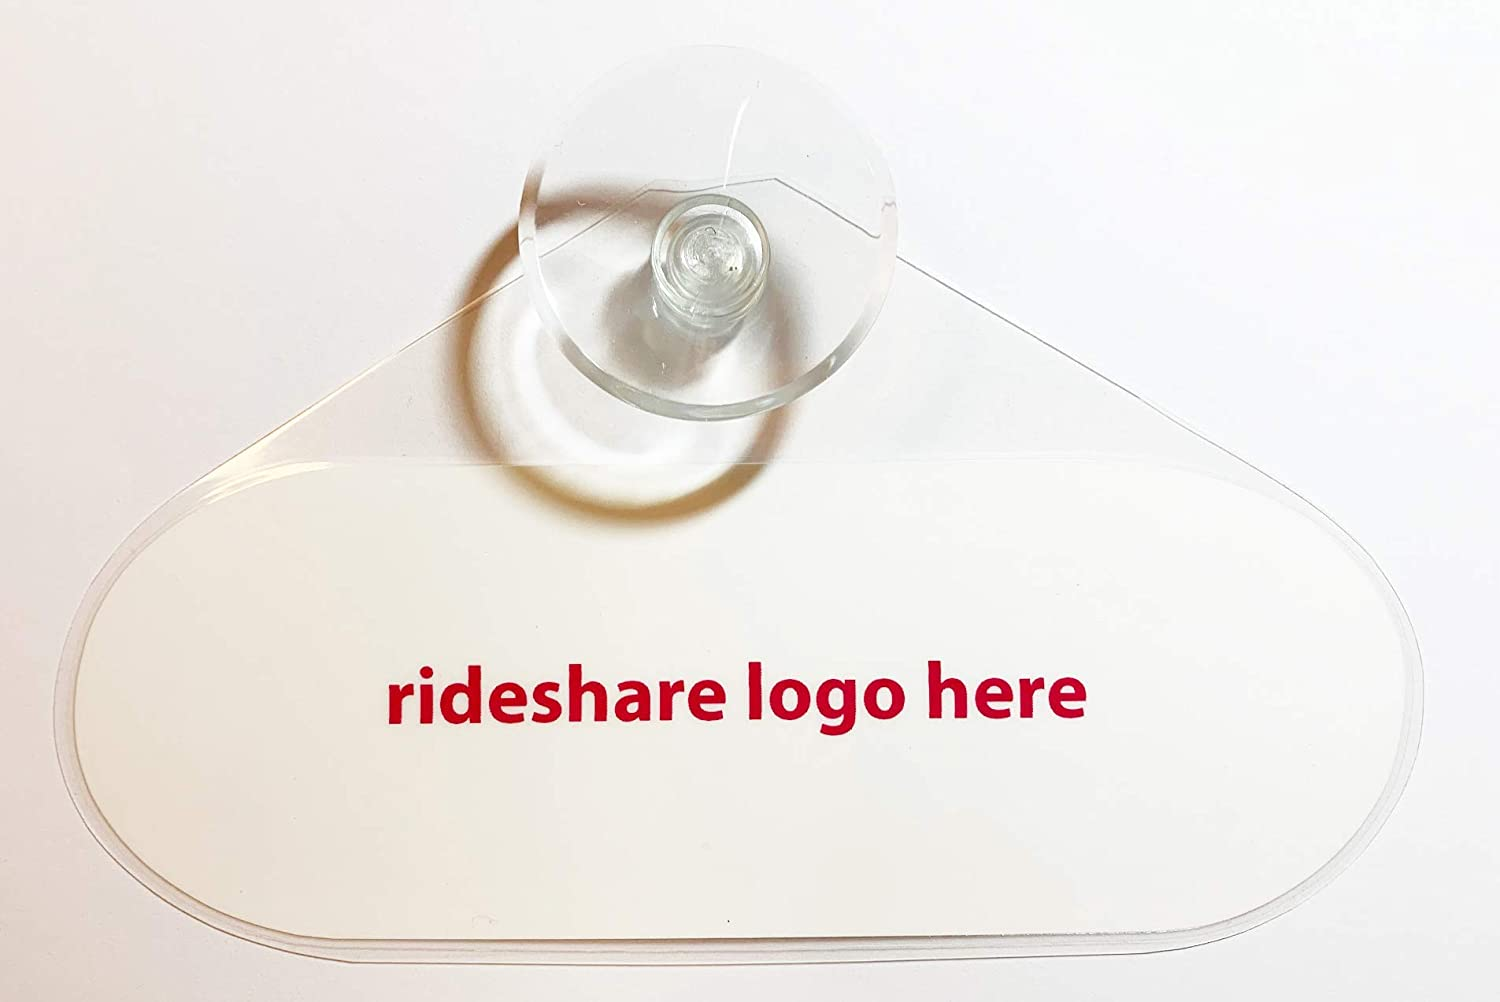 U 2 x display decal emblem with suction cup